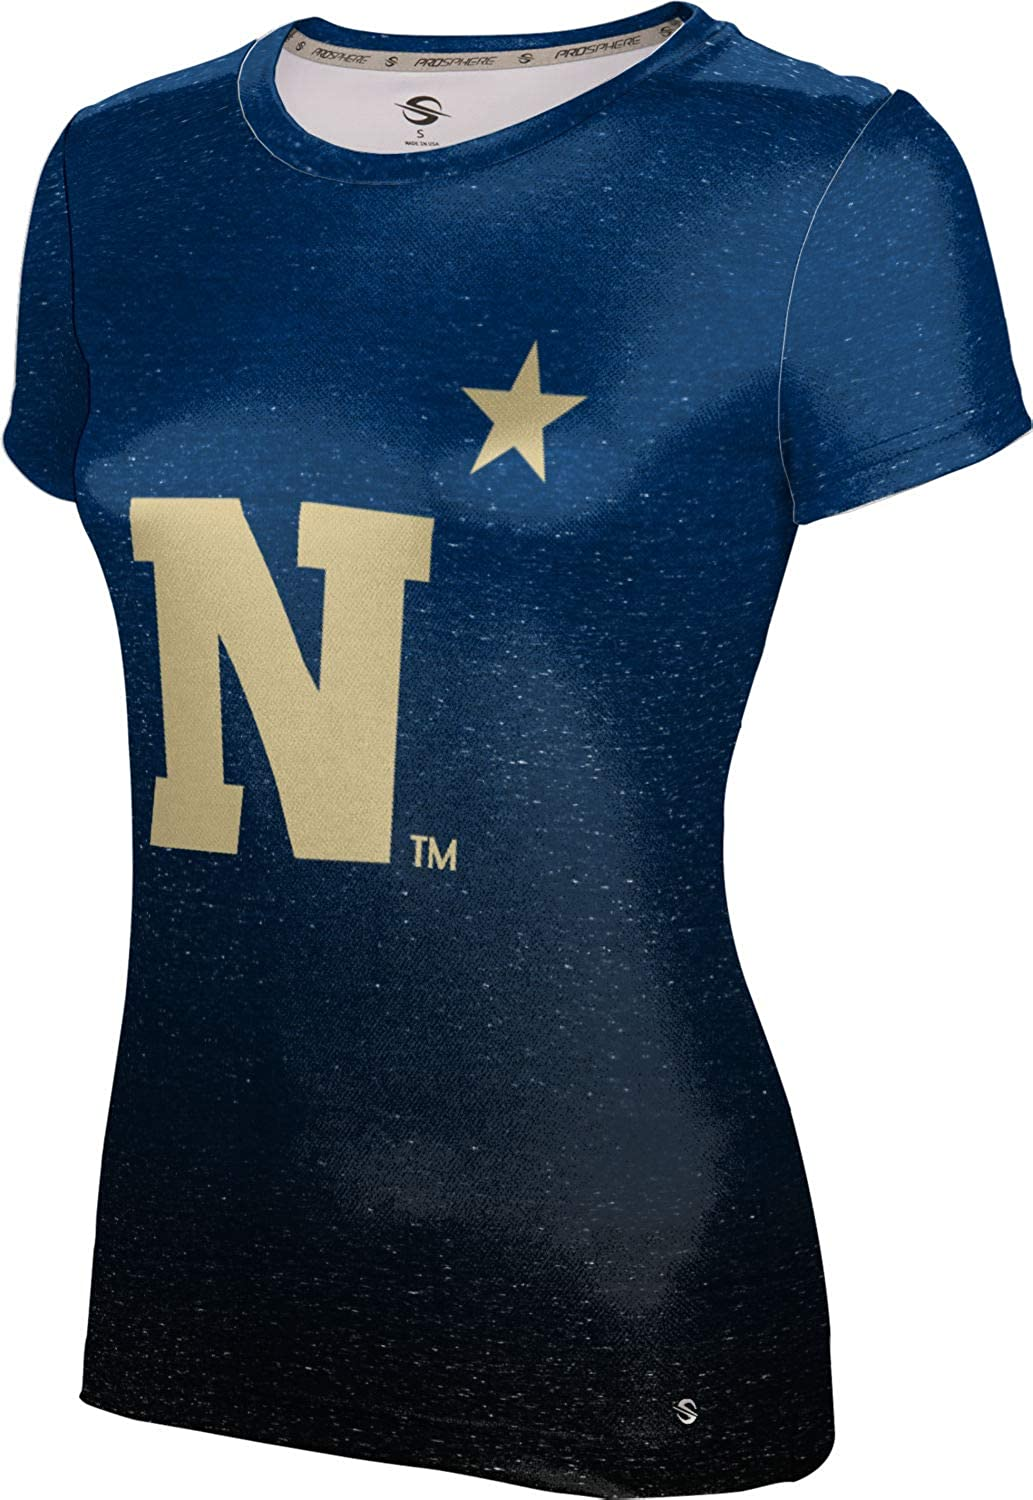 United States Naval Academy University Girls' Performance T-Shirt (Ombre)